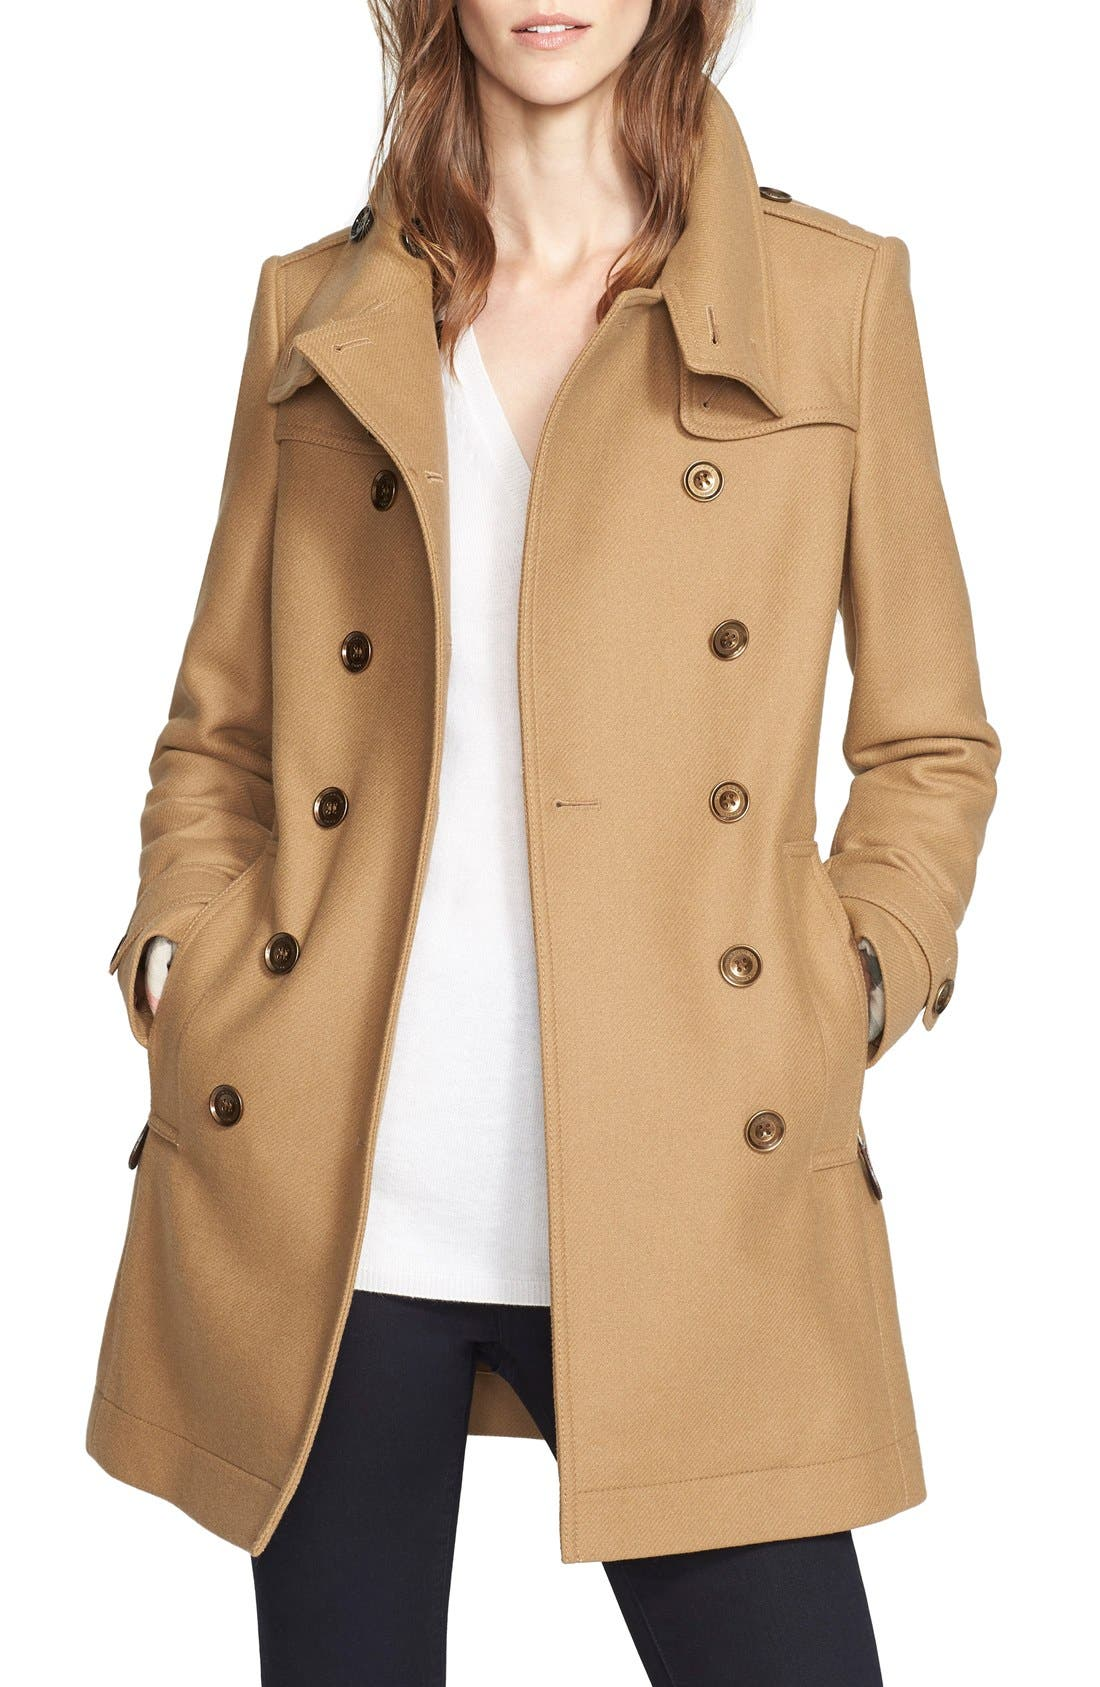 Main Image - Burberry Daylesmoore Wool Blend Double Breasted Trench Coat